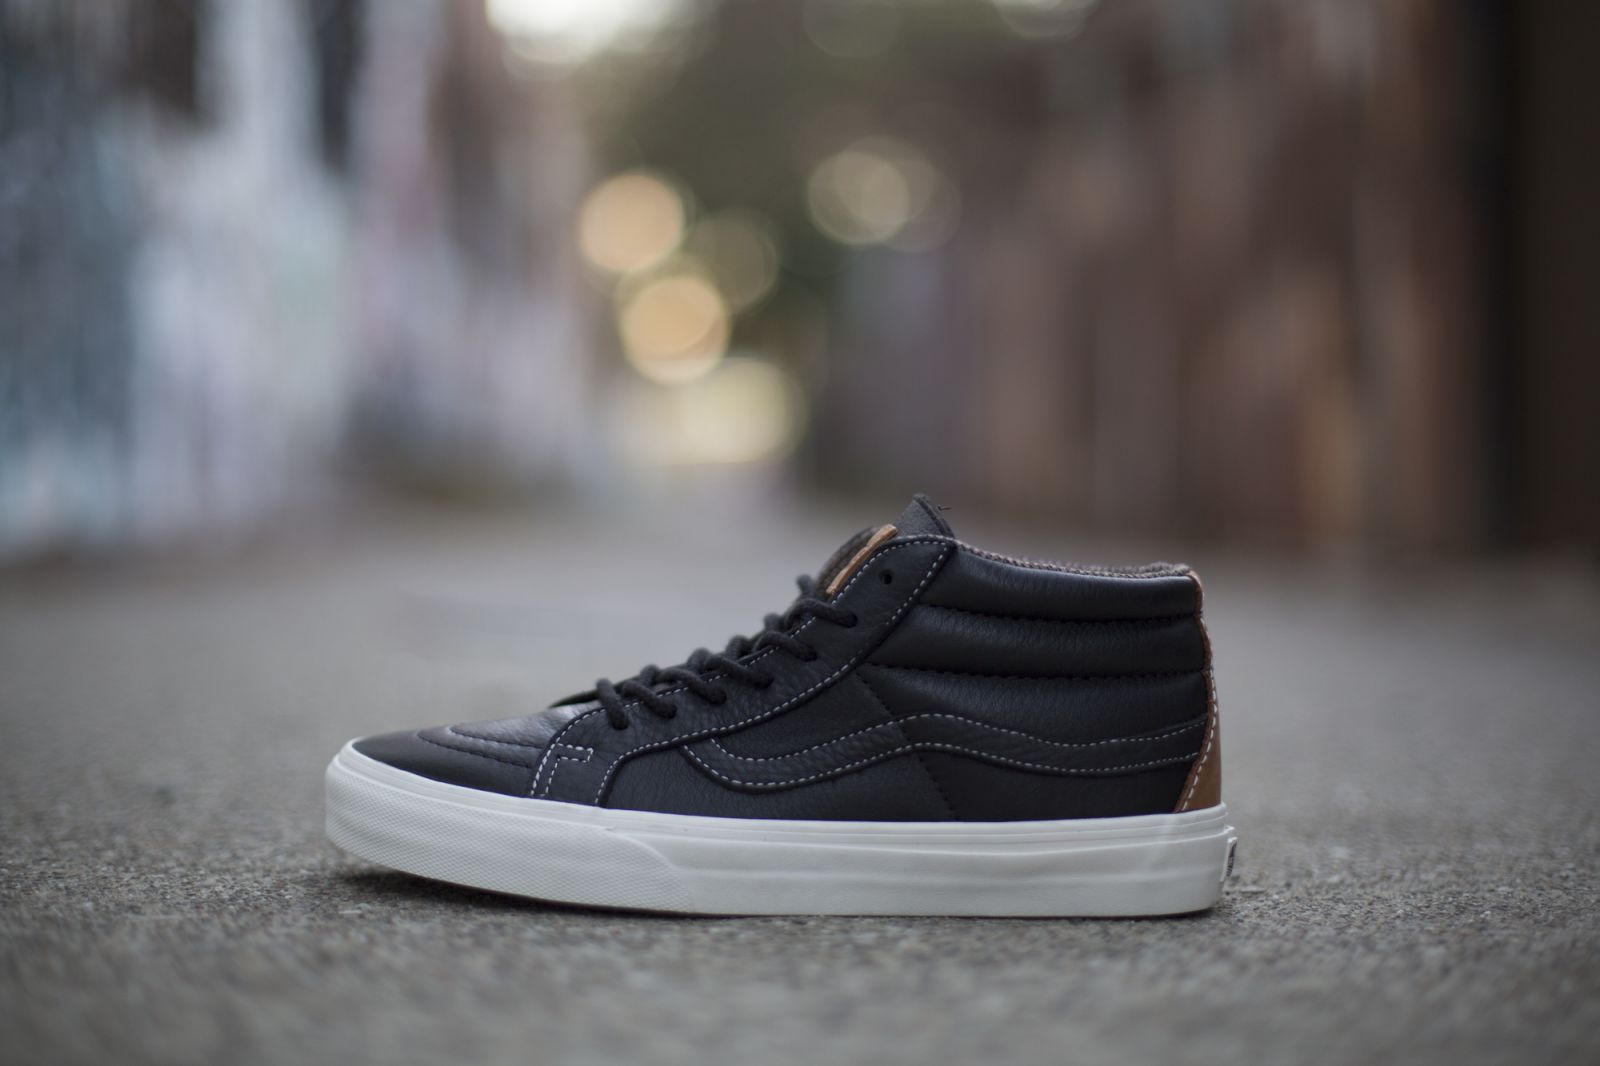 429ecc5f75 Vans California Sk8 Mid - Waxed Leather Pack